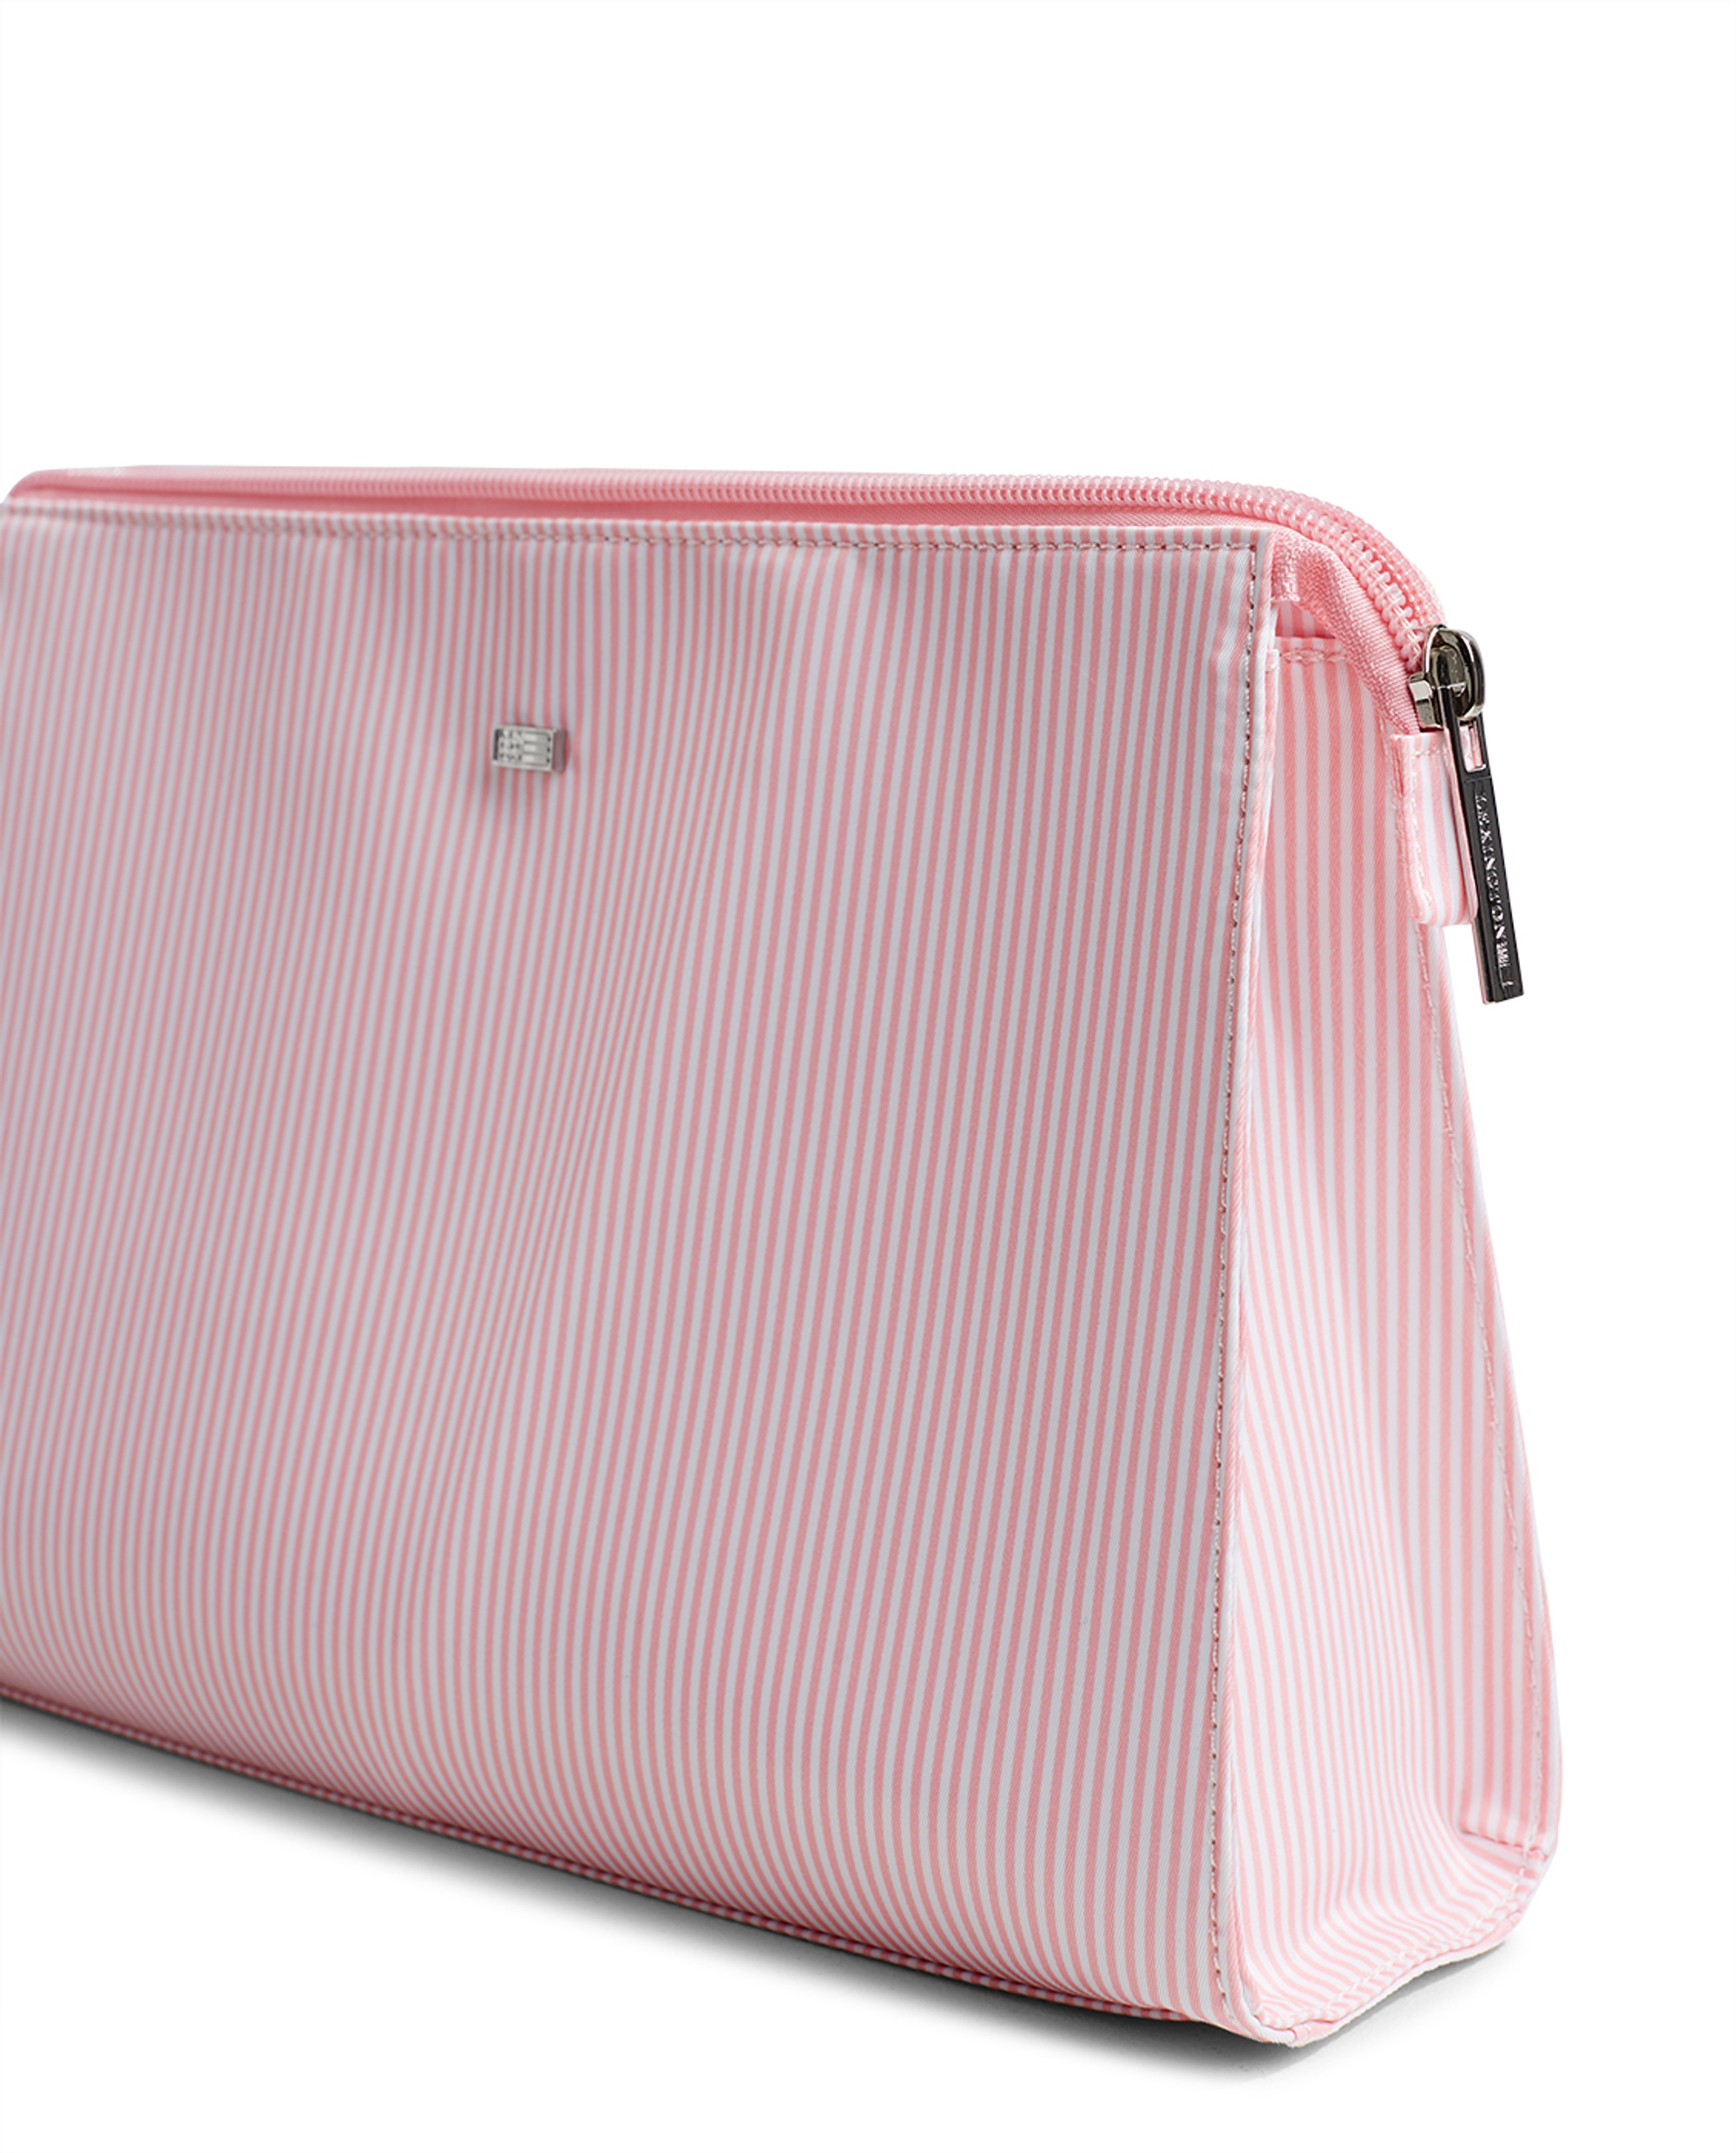 Icons Big Toilet Bag, Pink/White